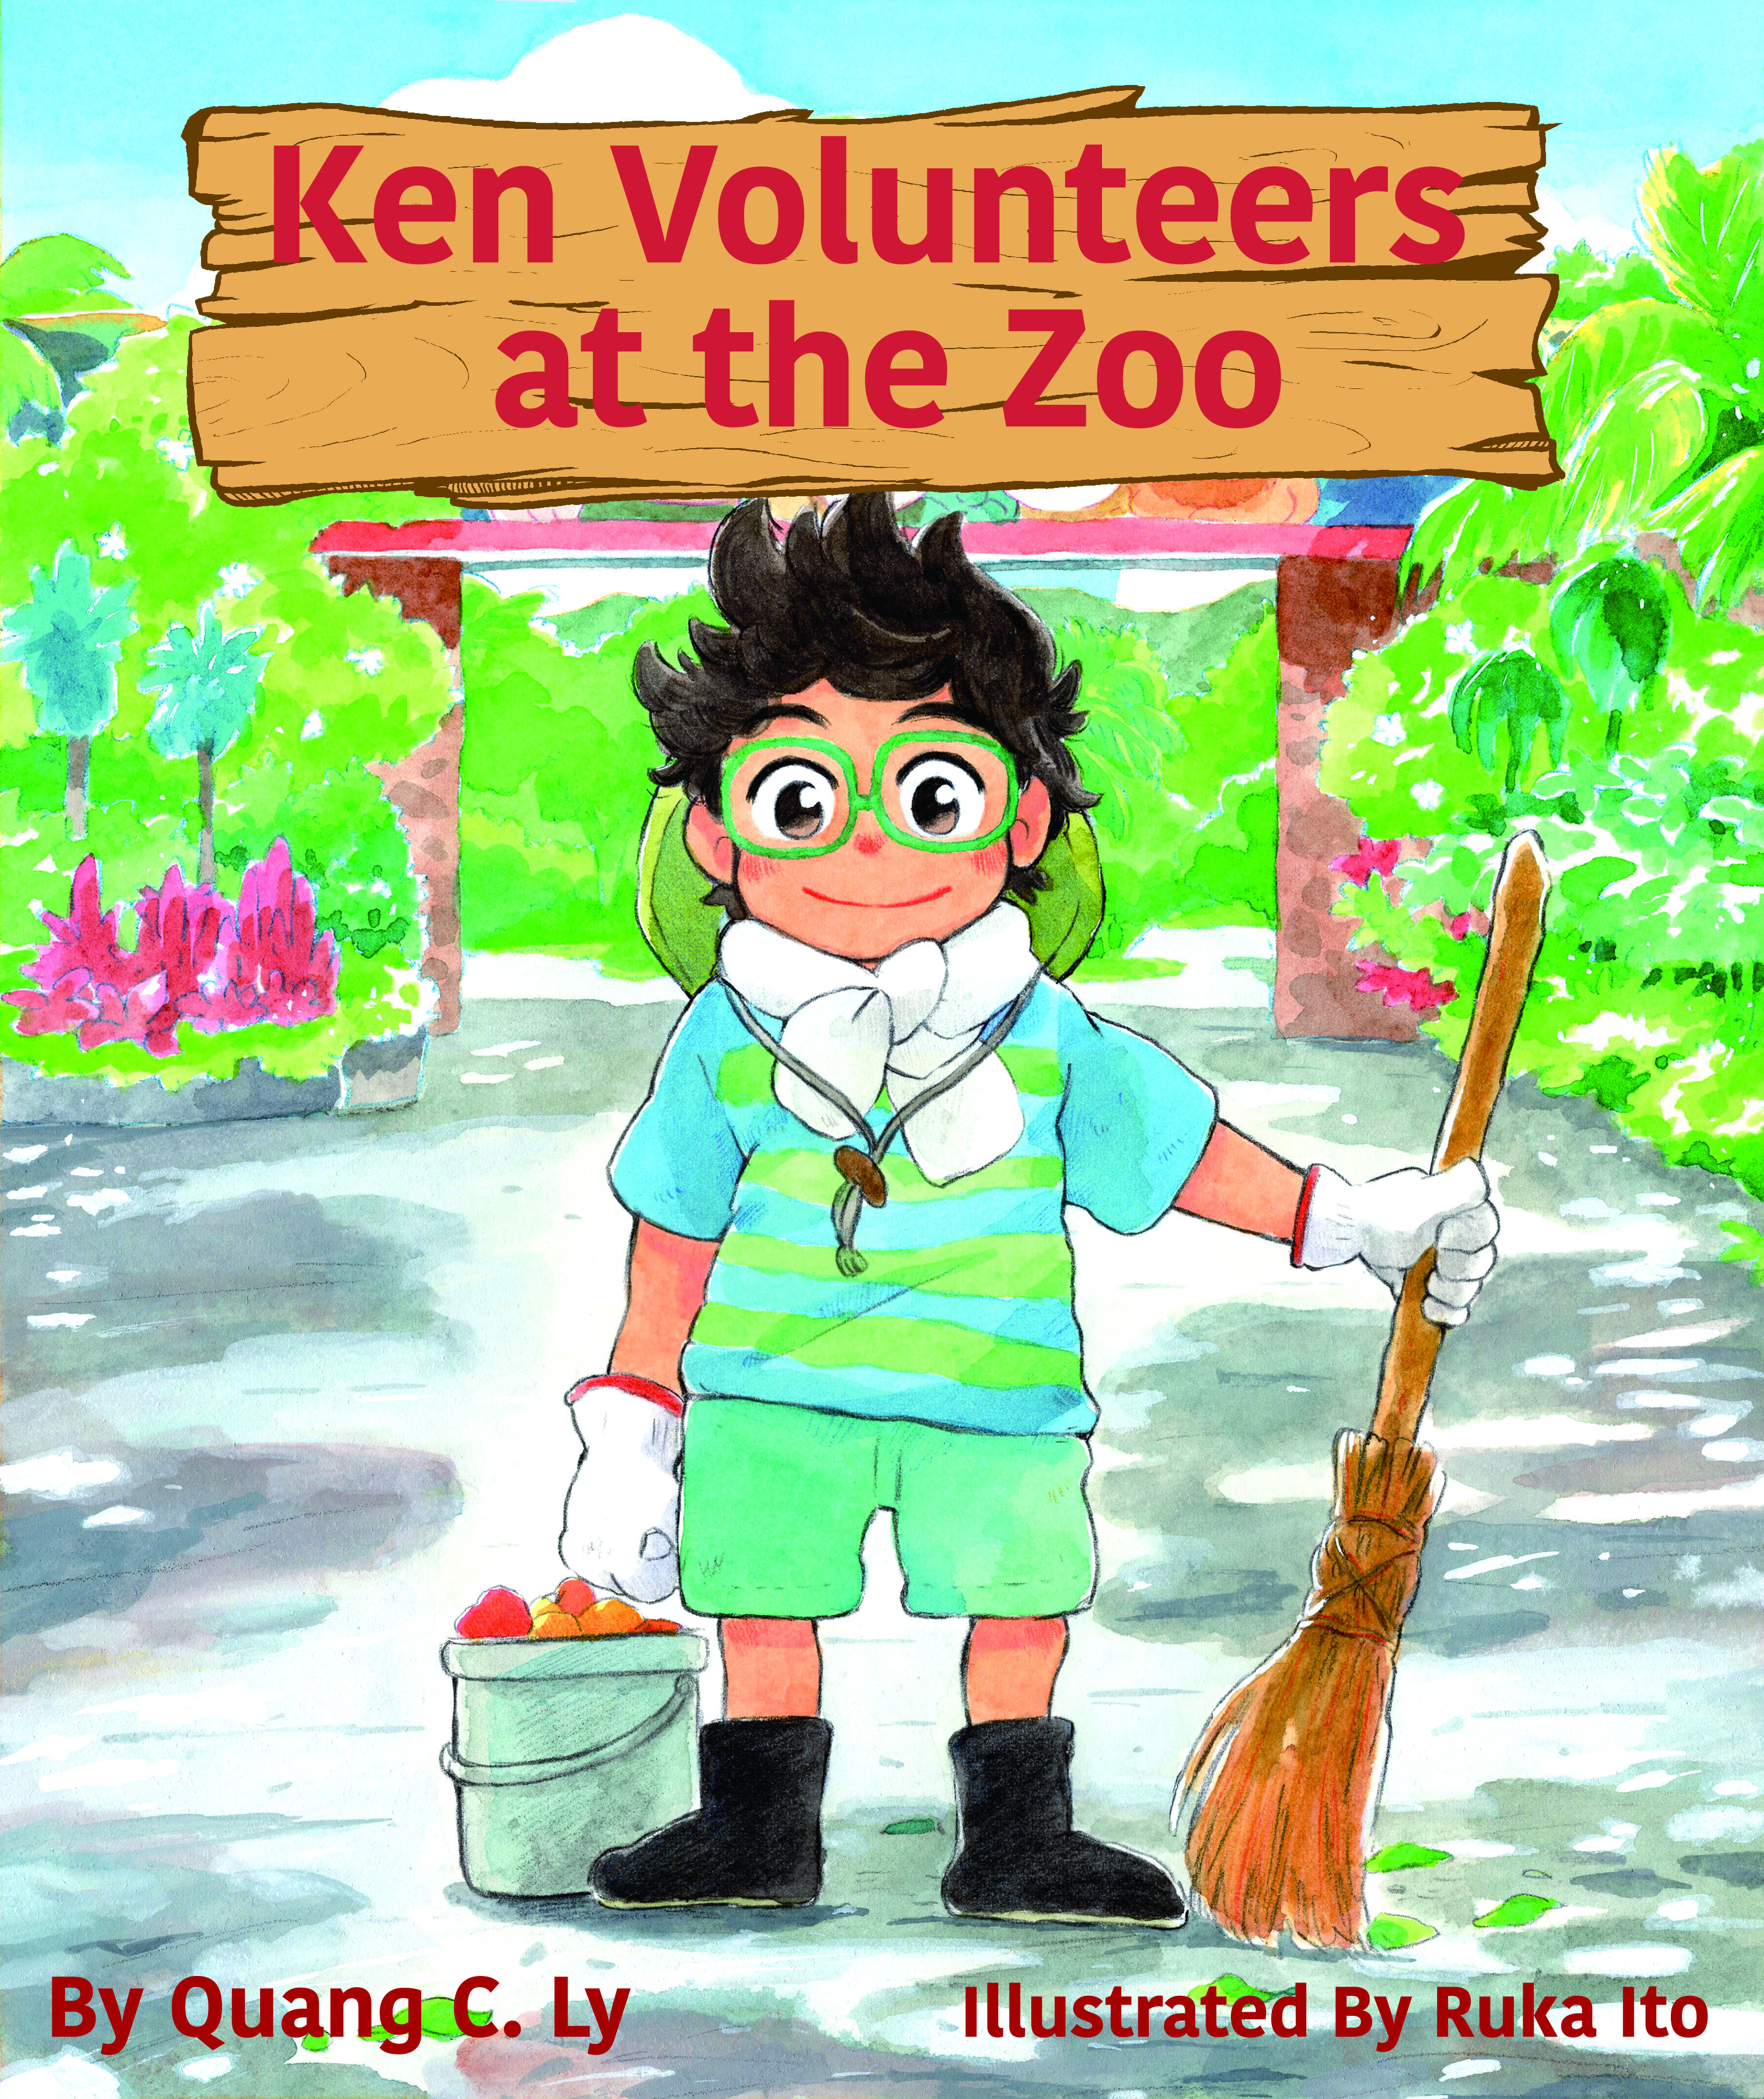 Ken Volunteers at the Zoo